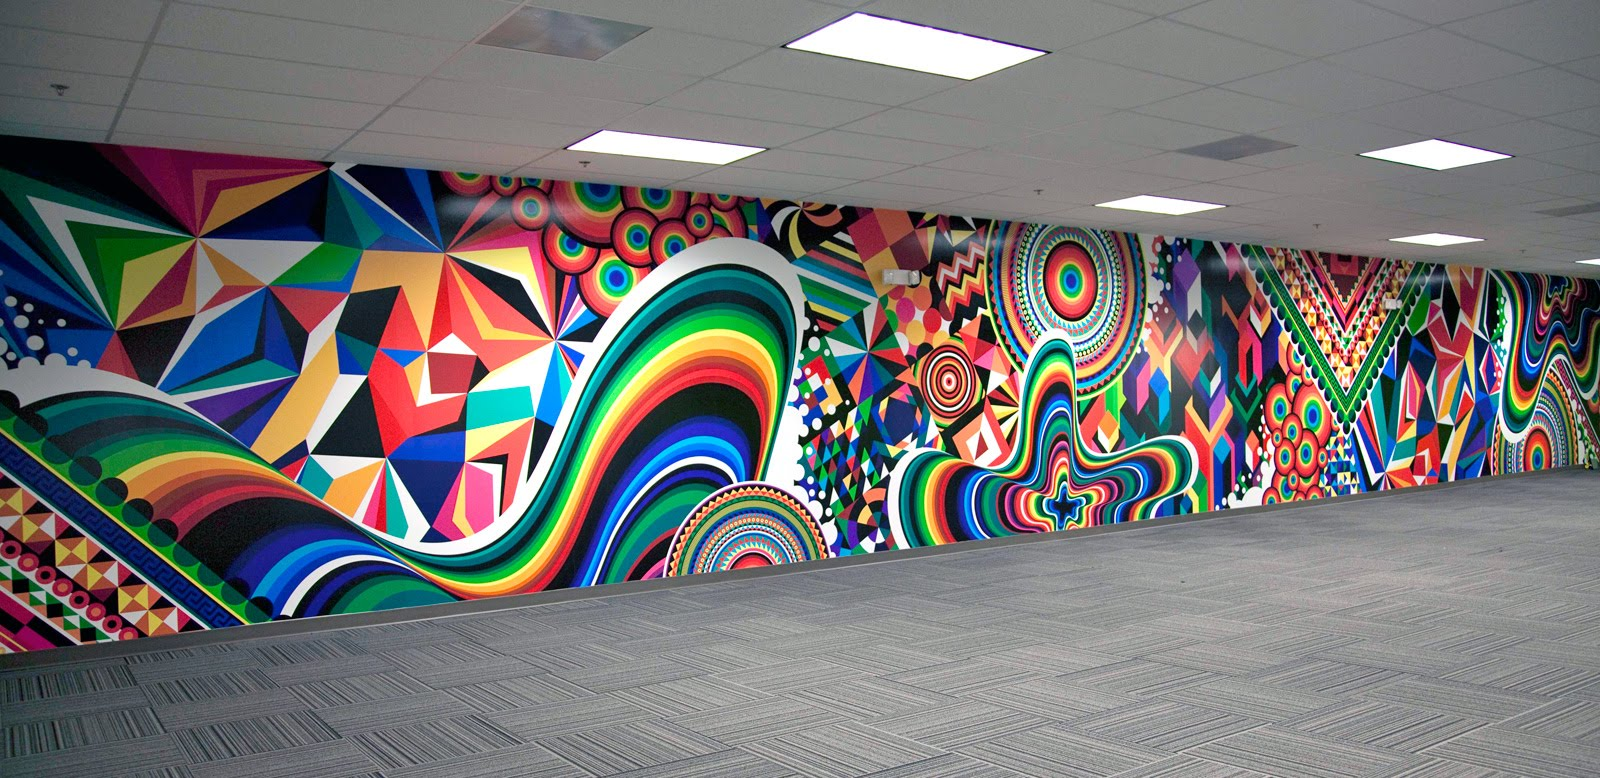 Mwm news blog super sized pop art op art for Mural painting ideas